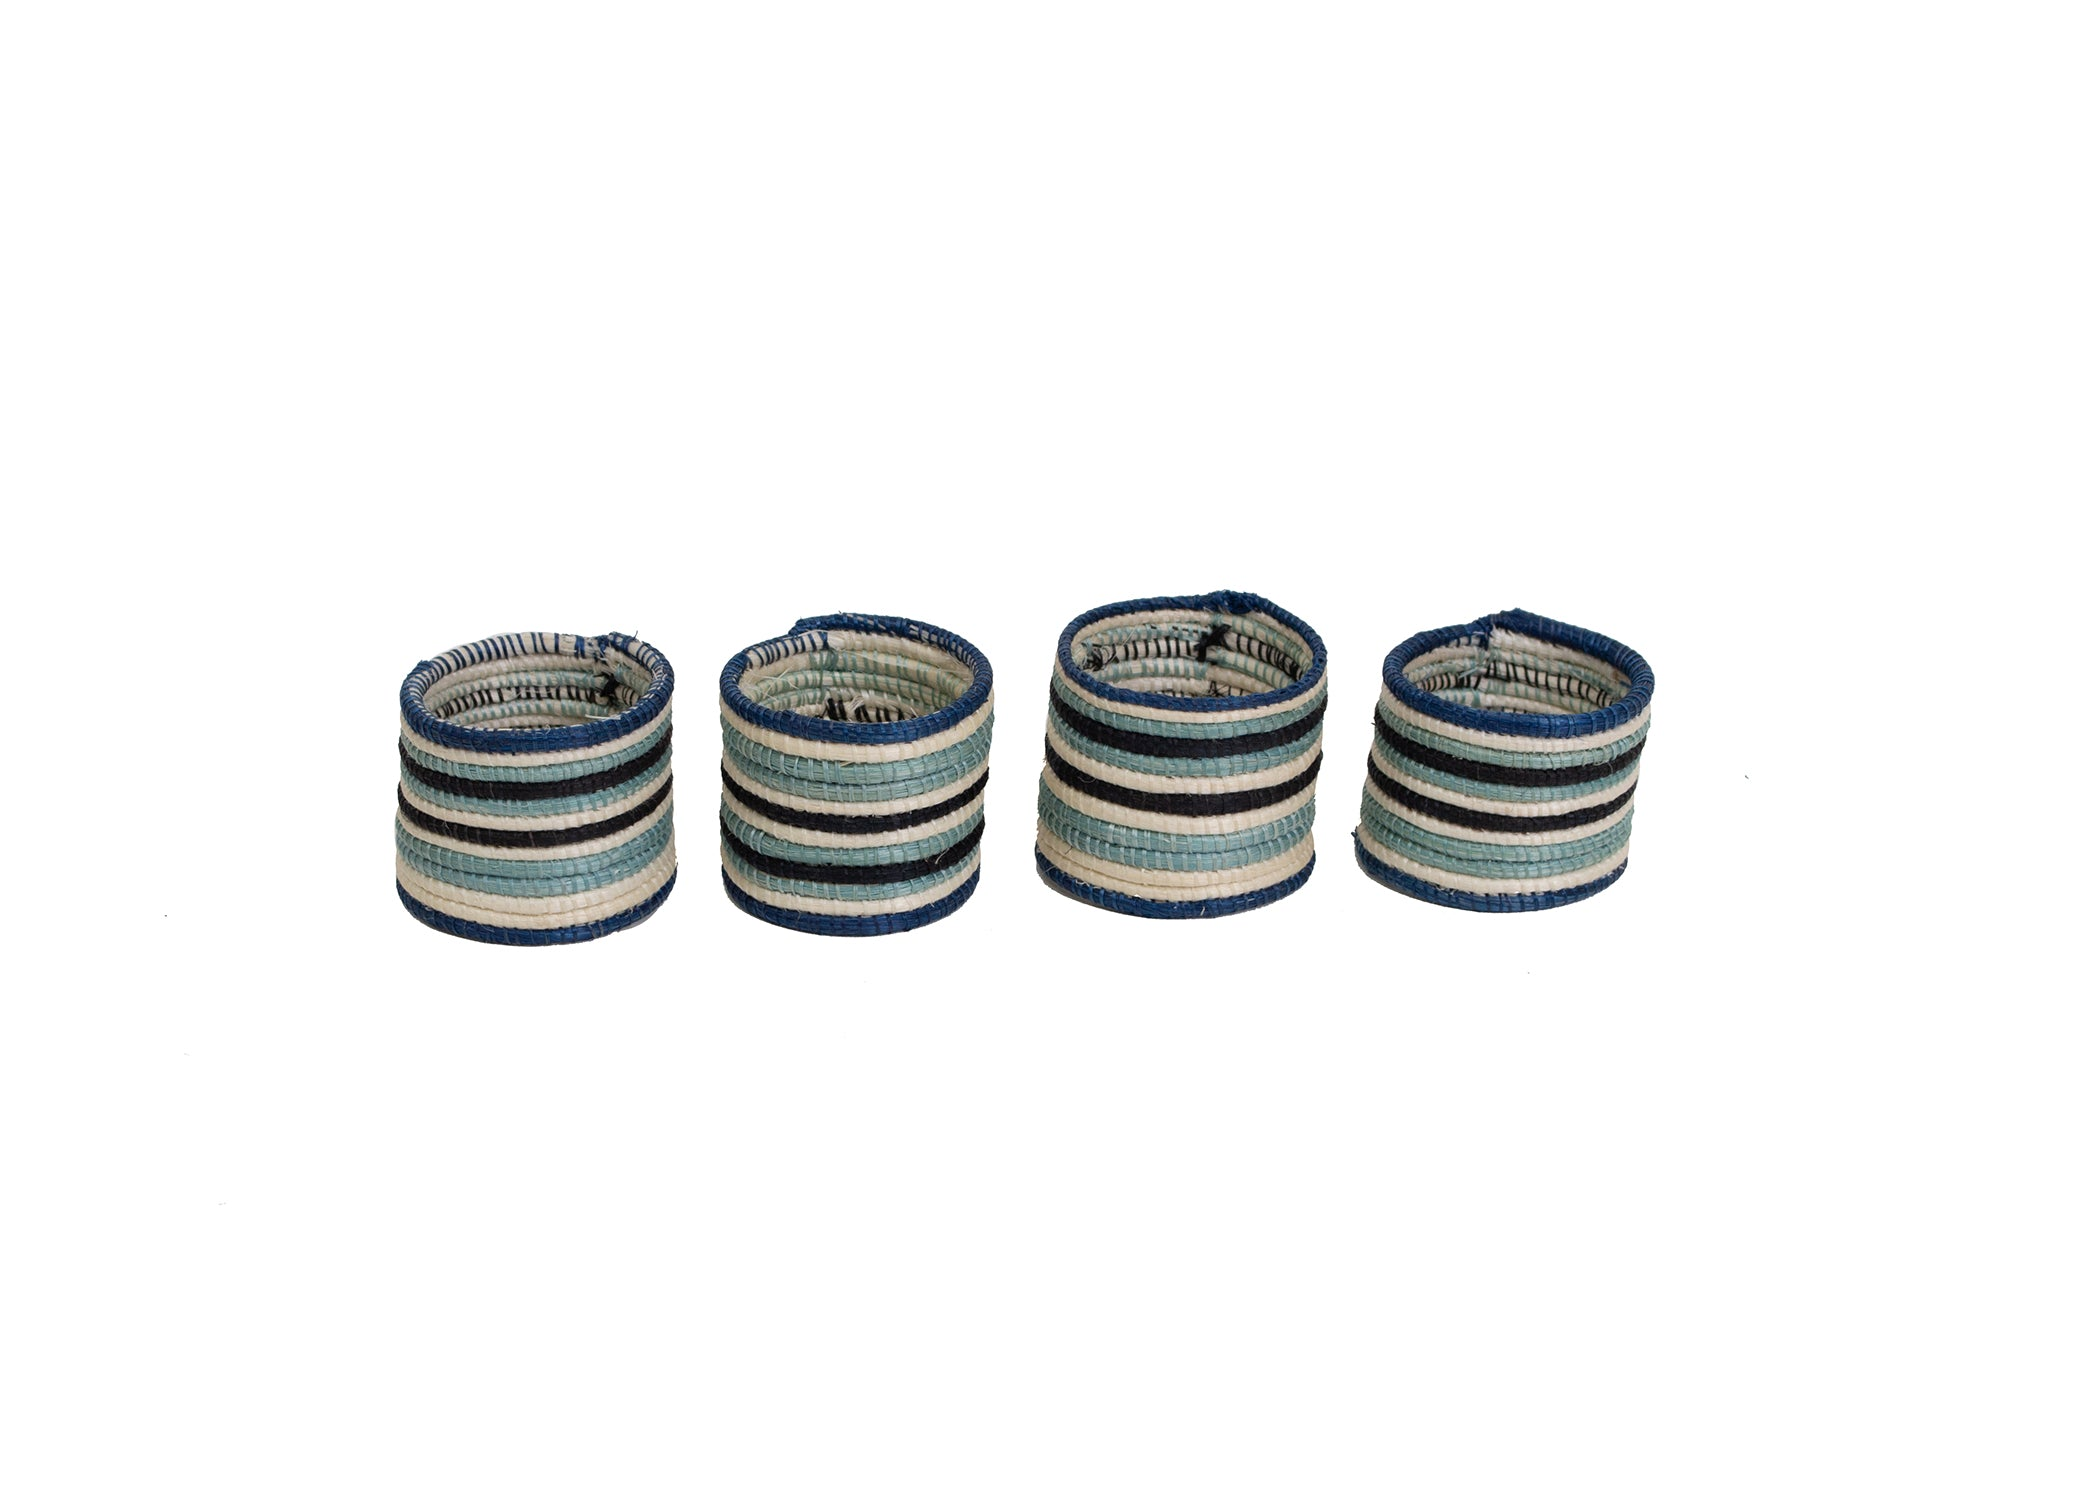 Striped Silver Blue Napkin Rings, Set of 4 - KAZI - Artisan made high quality home decor and wall art